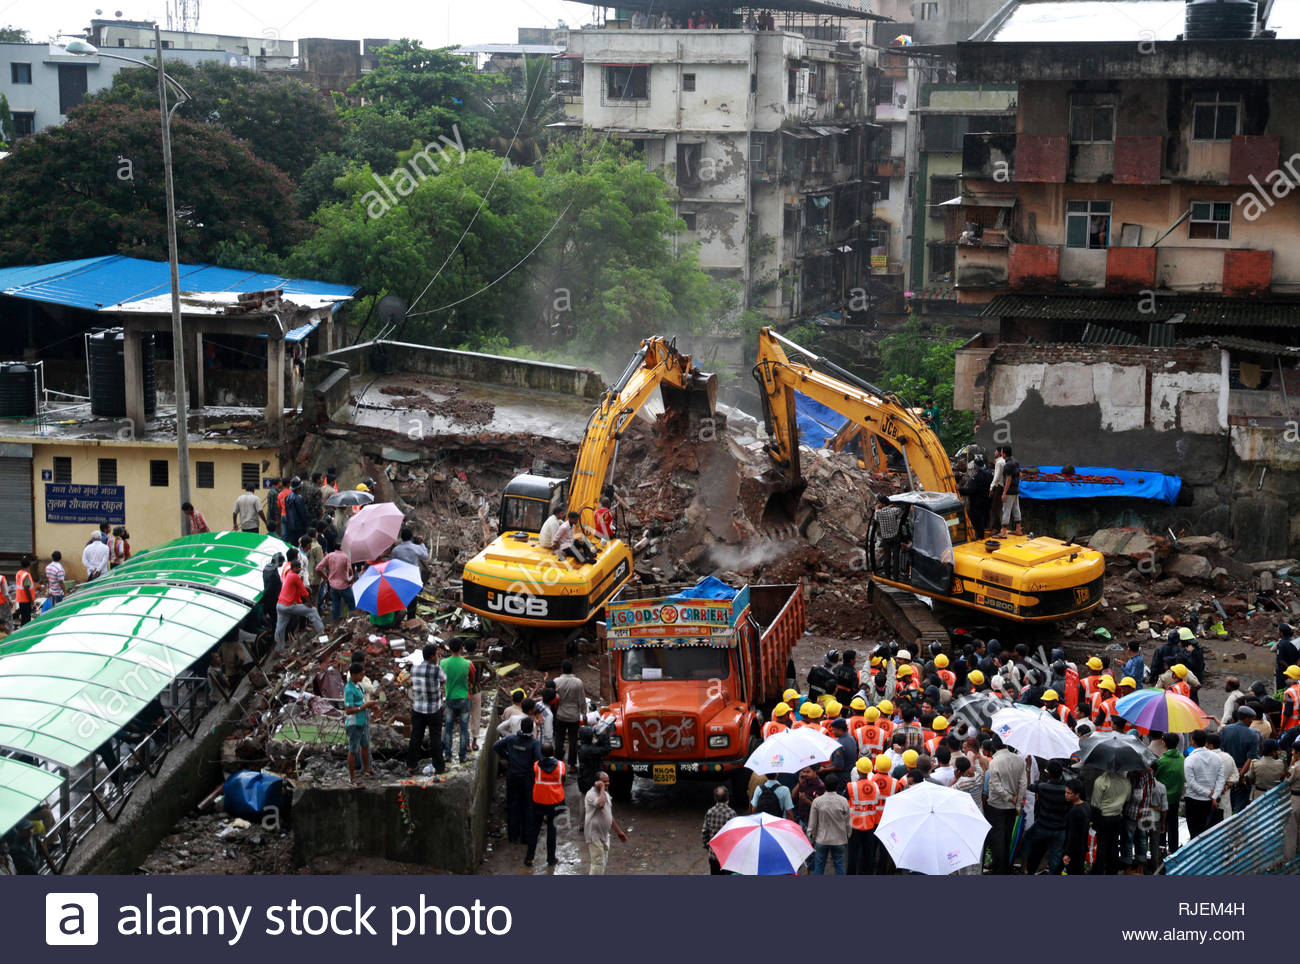 Earth movers pressed into service for rescue worker look for people trapped in the rubble of the building that collapsed at Mumbra, in Thane, Mumbai, India on June 21, 2013. The 35-year-old Shakuntala building, situated at Bazarpeth in Mumbra of Thane district collapsed after midnight. At least ten people are feared dead and several people are injured.(Ramesh Nair/ SOLARIS IMAGES) at least 14 injured. (Ramesh Nair/ SOLARIS IMAGES) - Stock Image